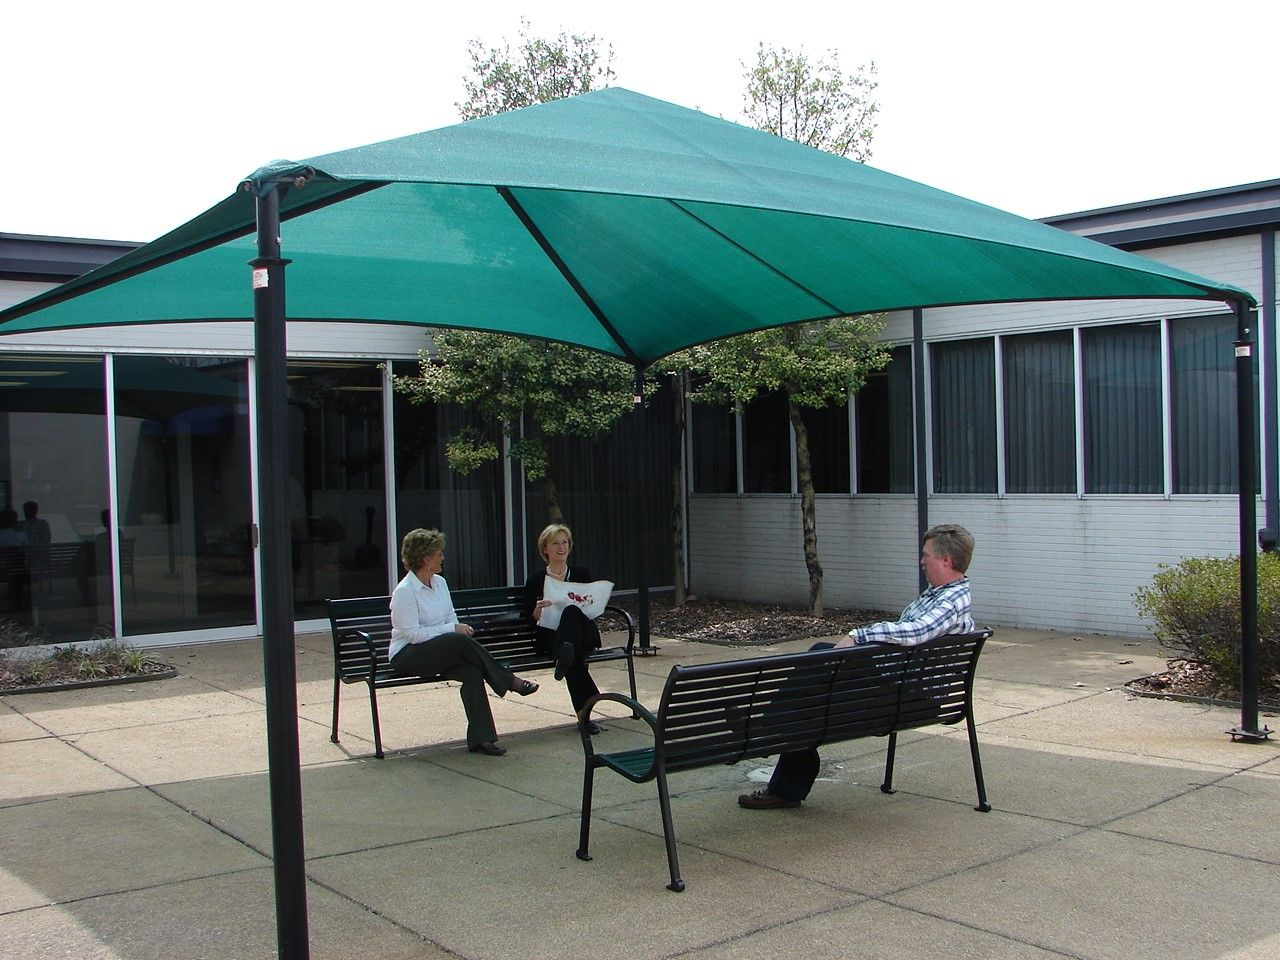 Anchor Industries Funbrella perfectshade works great in courtyards or break areas like